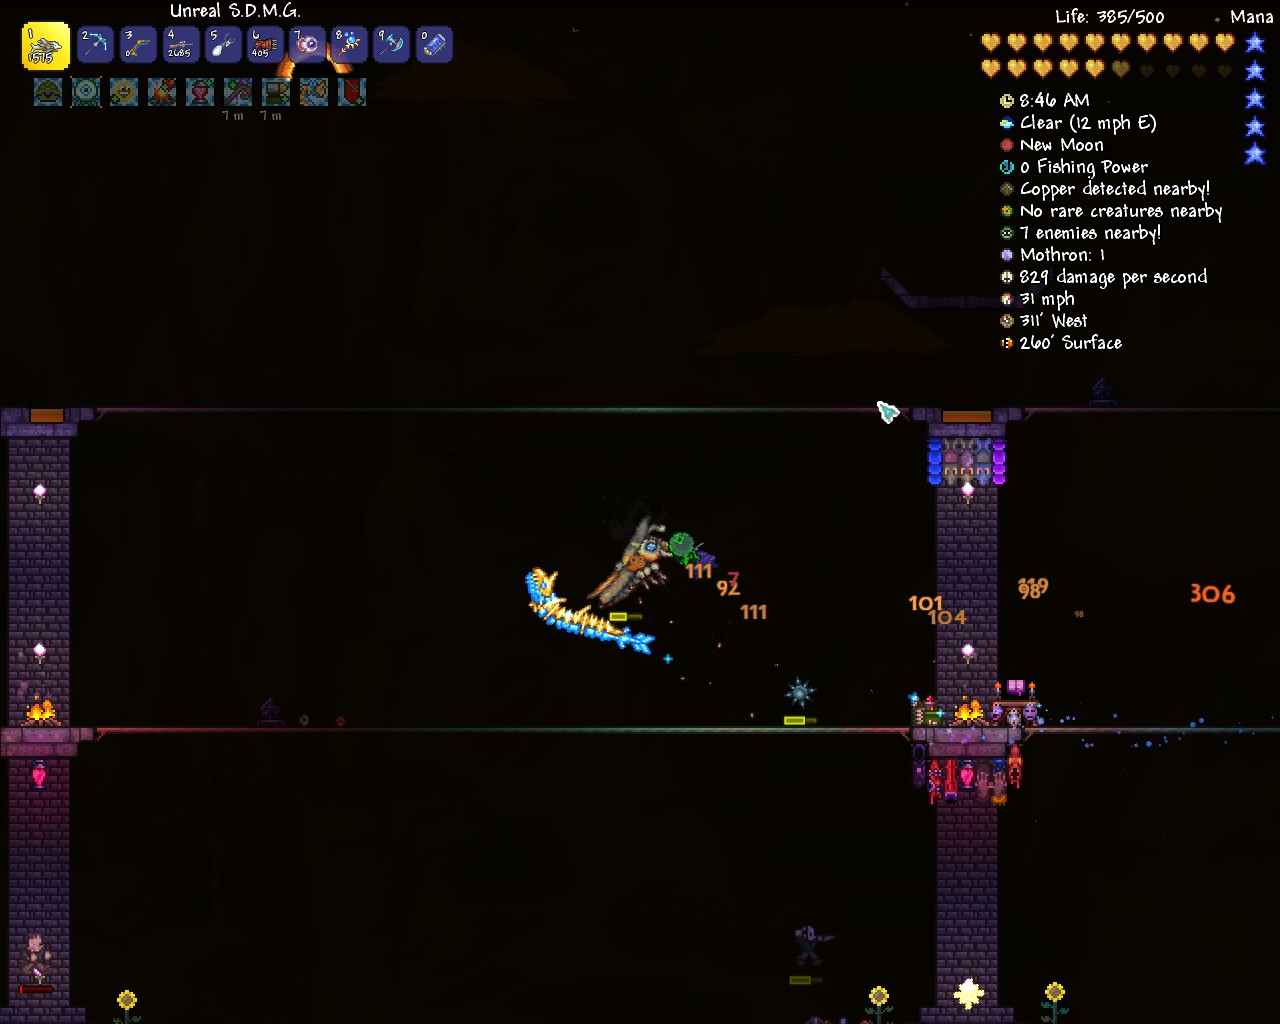 Steam Community Guide Lord S Guide To Terraria Survival Growing Stones And Weedkiller Creatures are creping, crawling up from the deepest pits of the ground everything seems falling apart, there's no more hope around. lord s guide to terraria survival